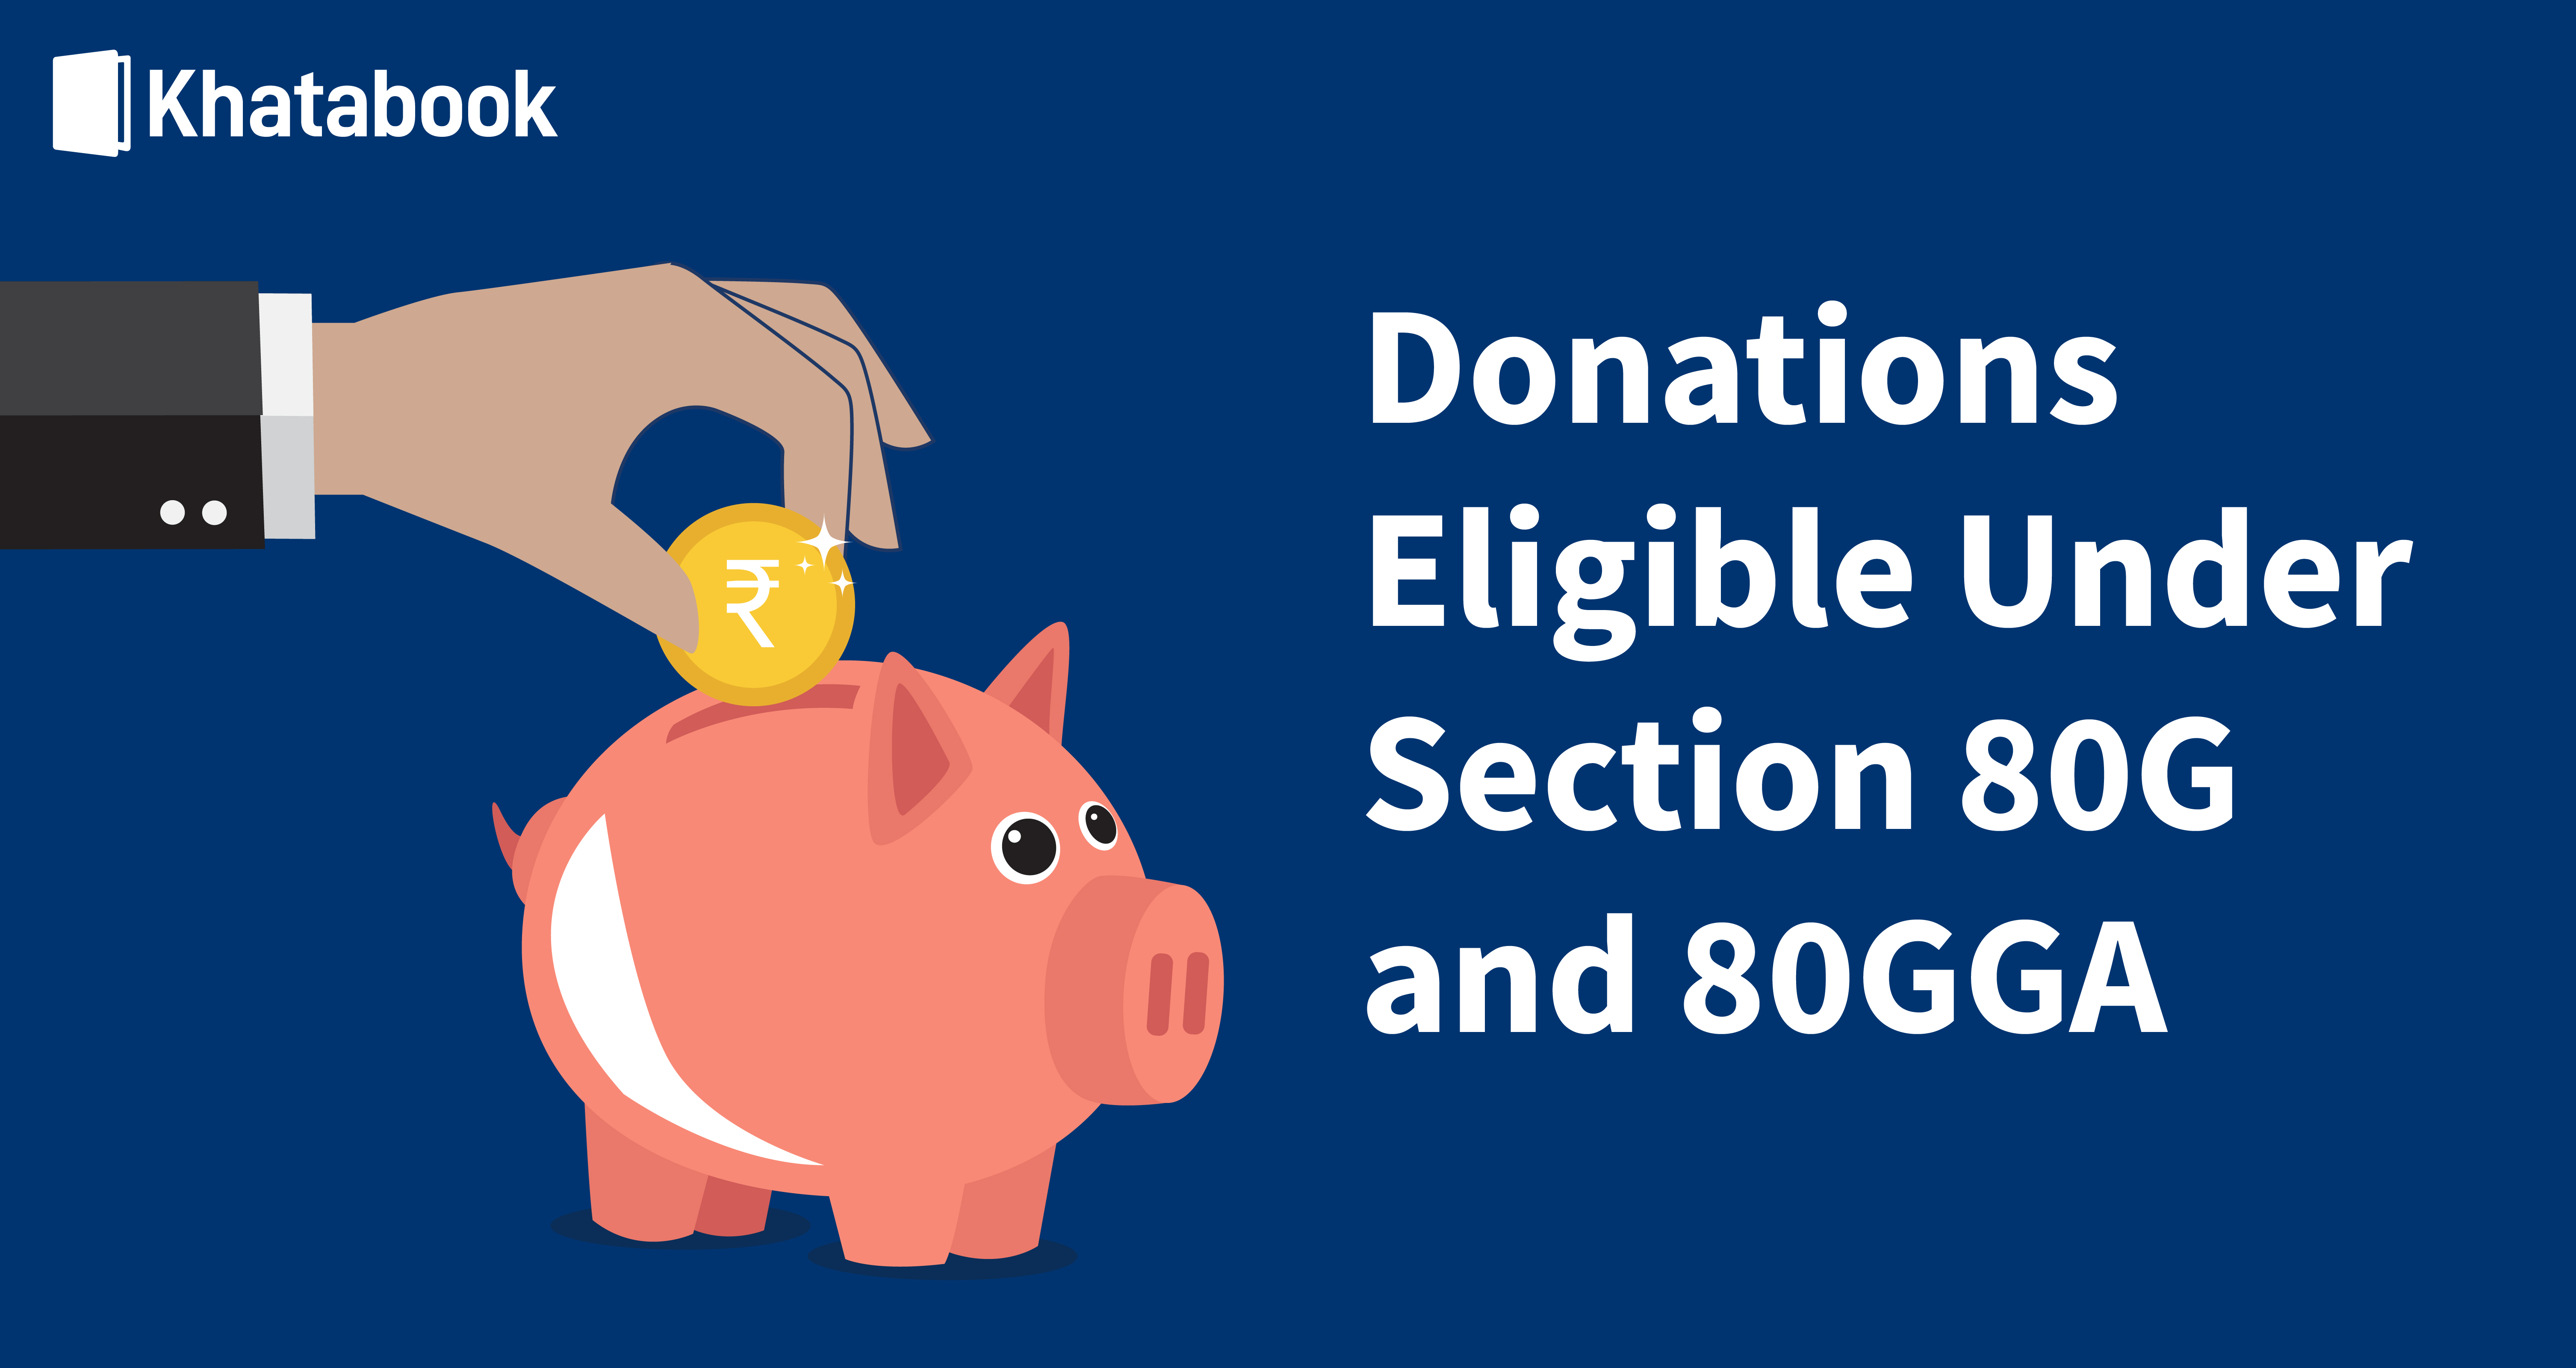 What Are The Donations Eligible Under Section 80G and 80GGA?